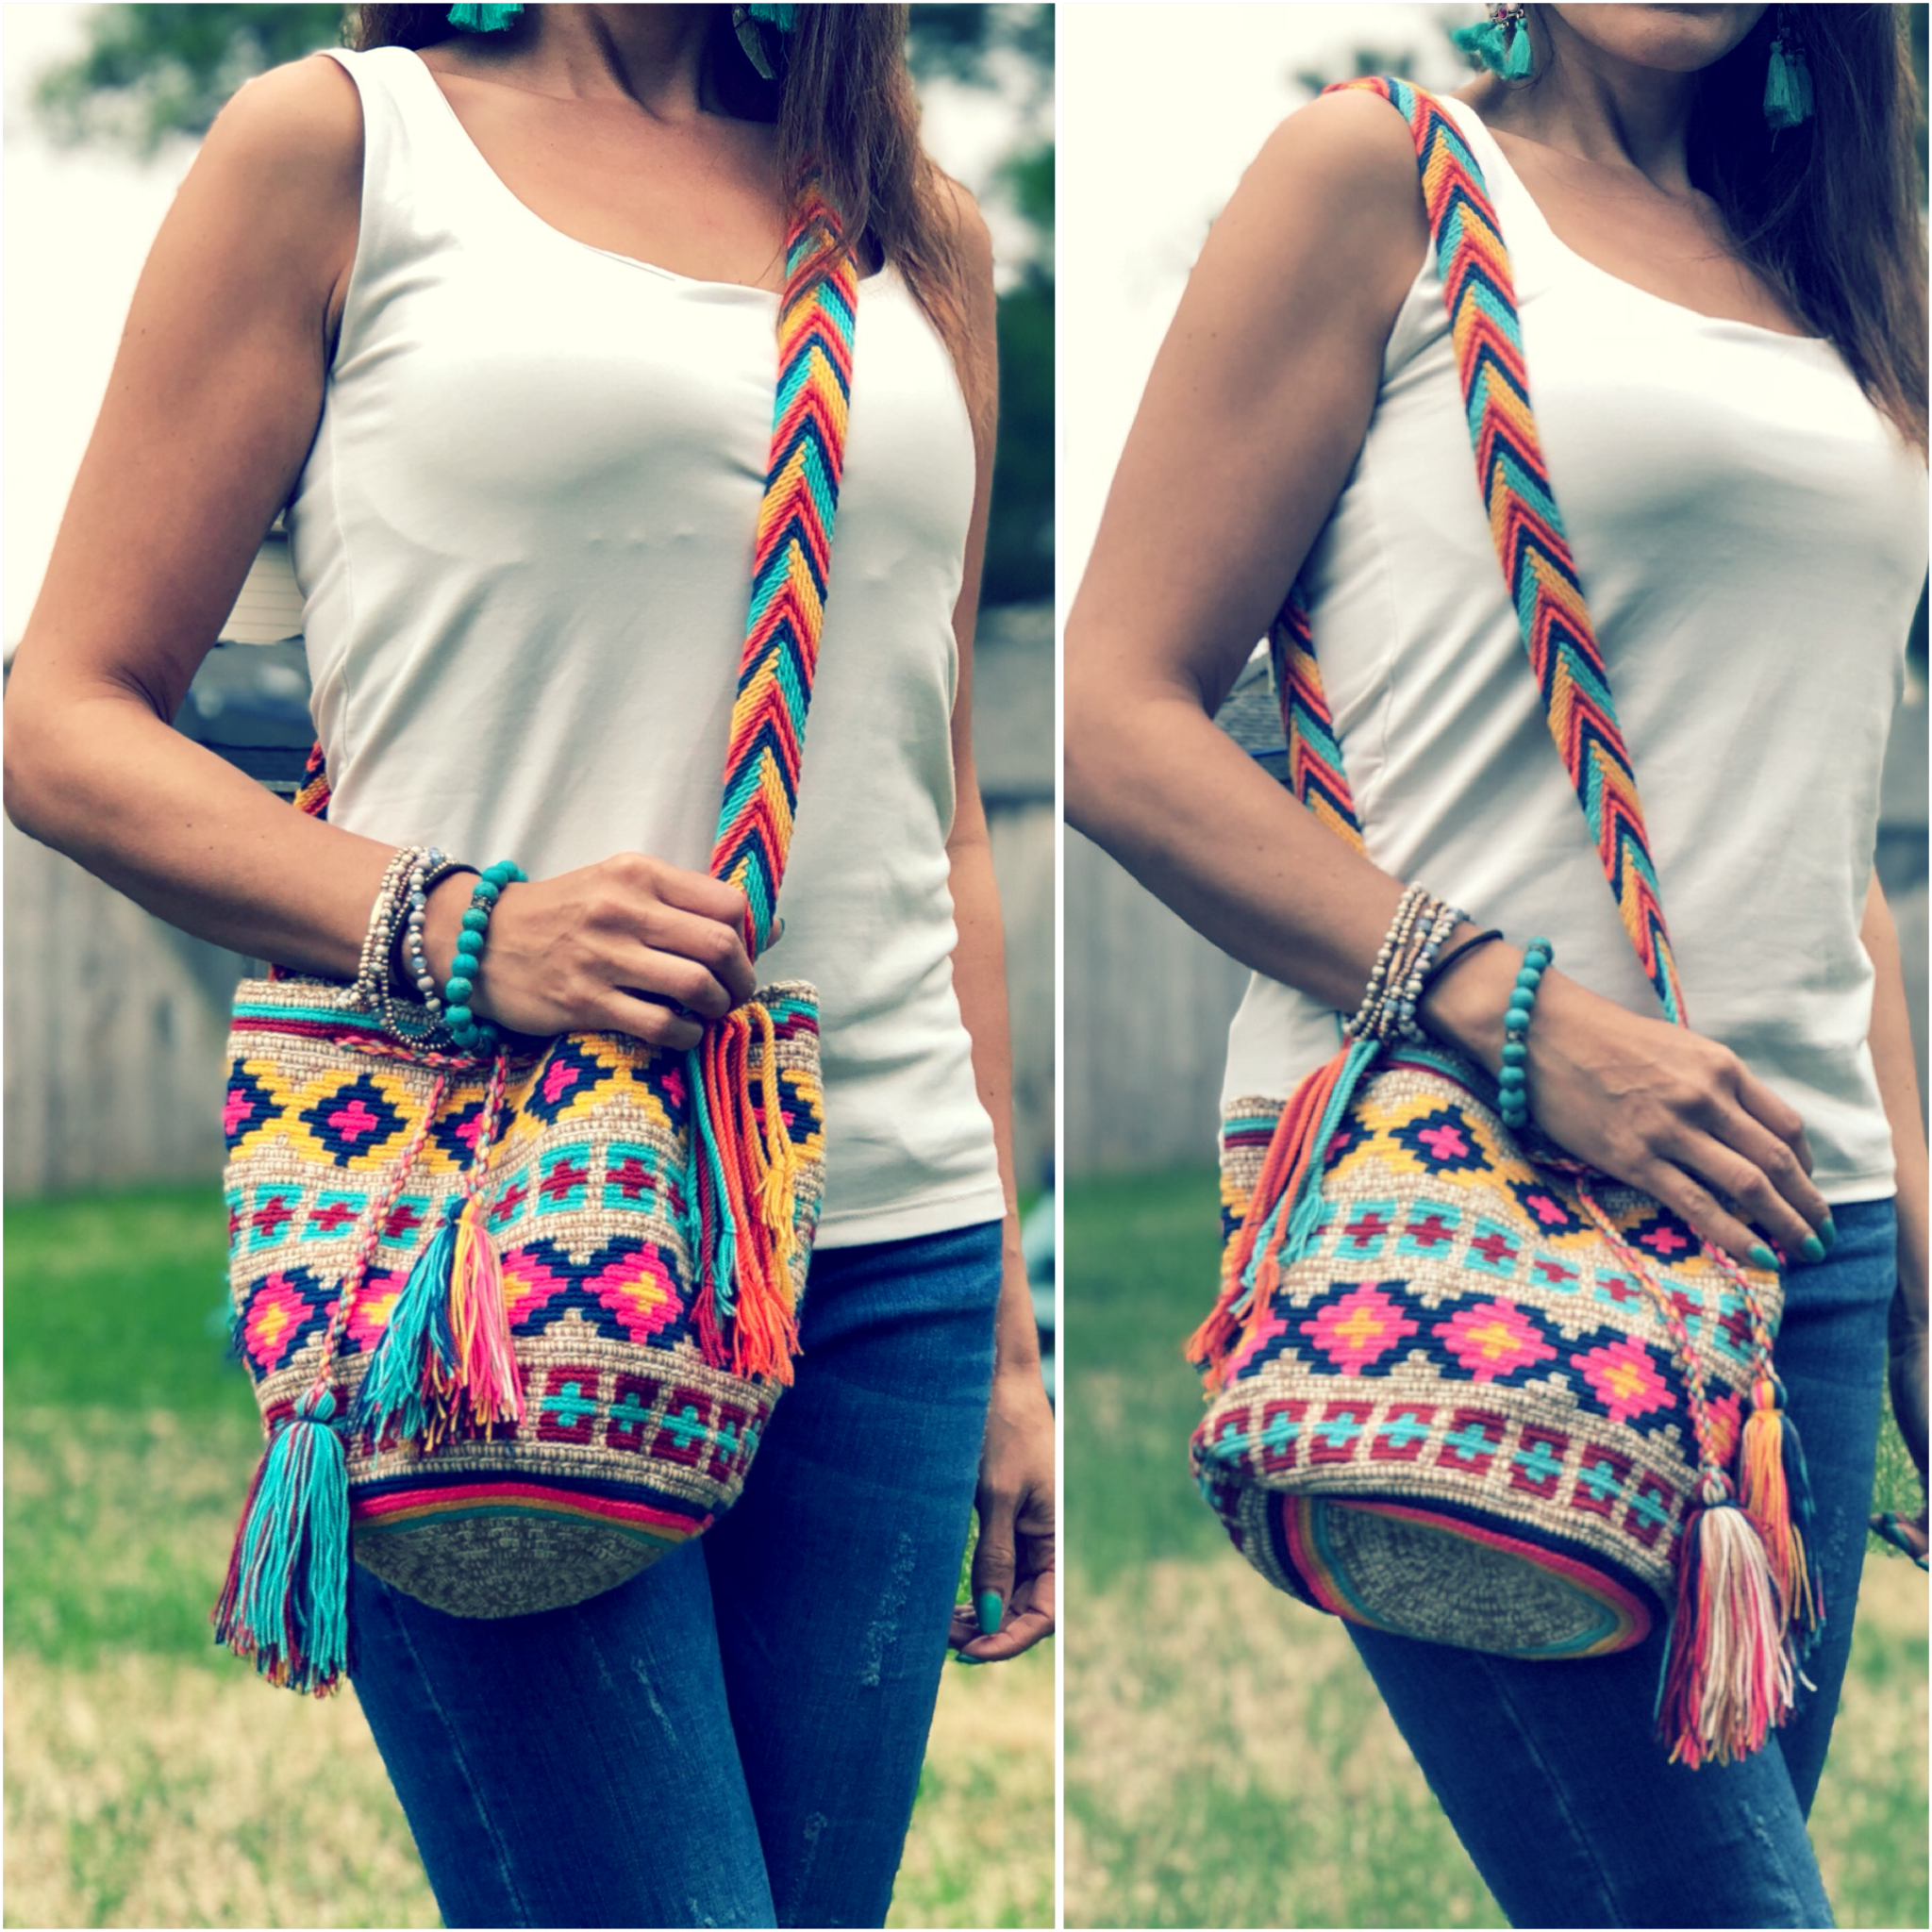 Medium-Size Colorful Crochet Bag - Crossbody Boho Bag - Style MWDM20